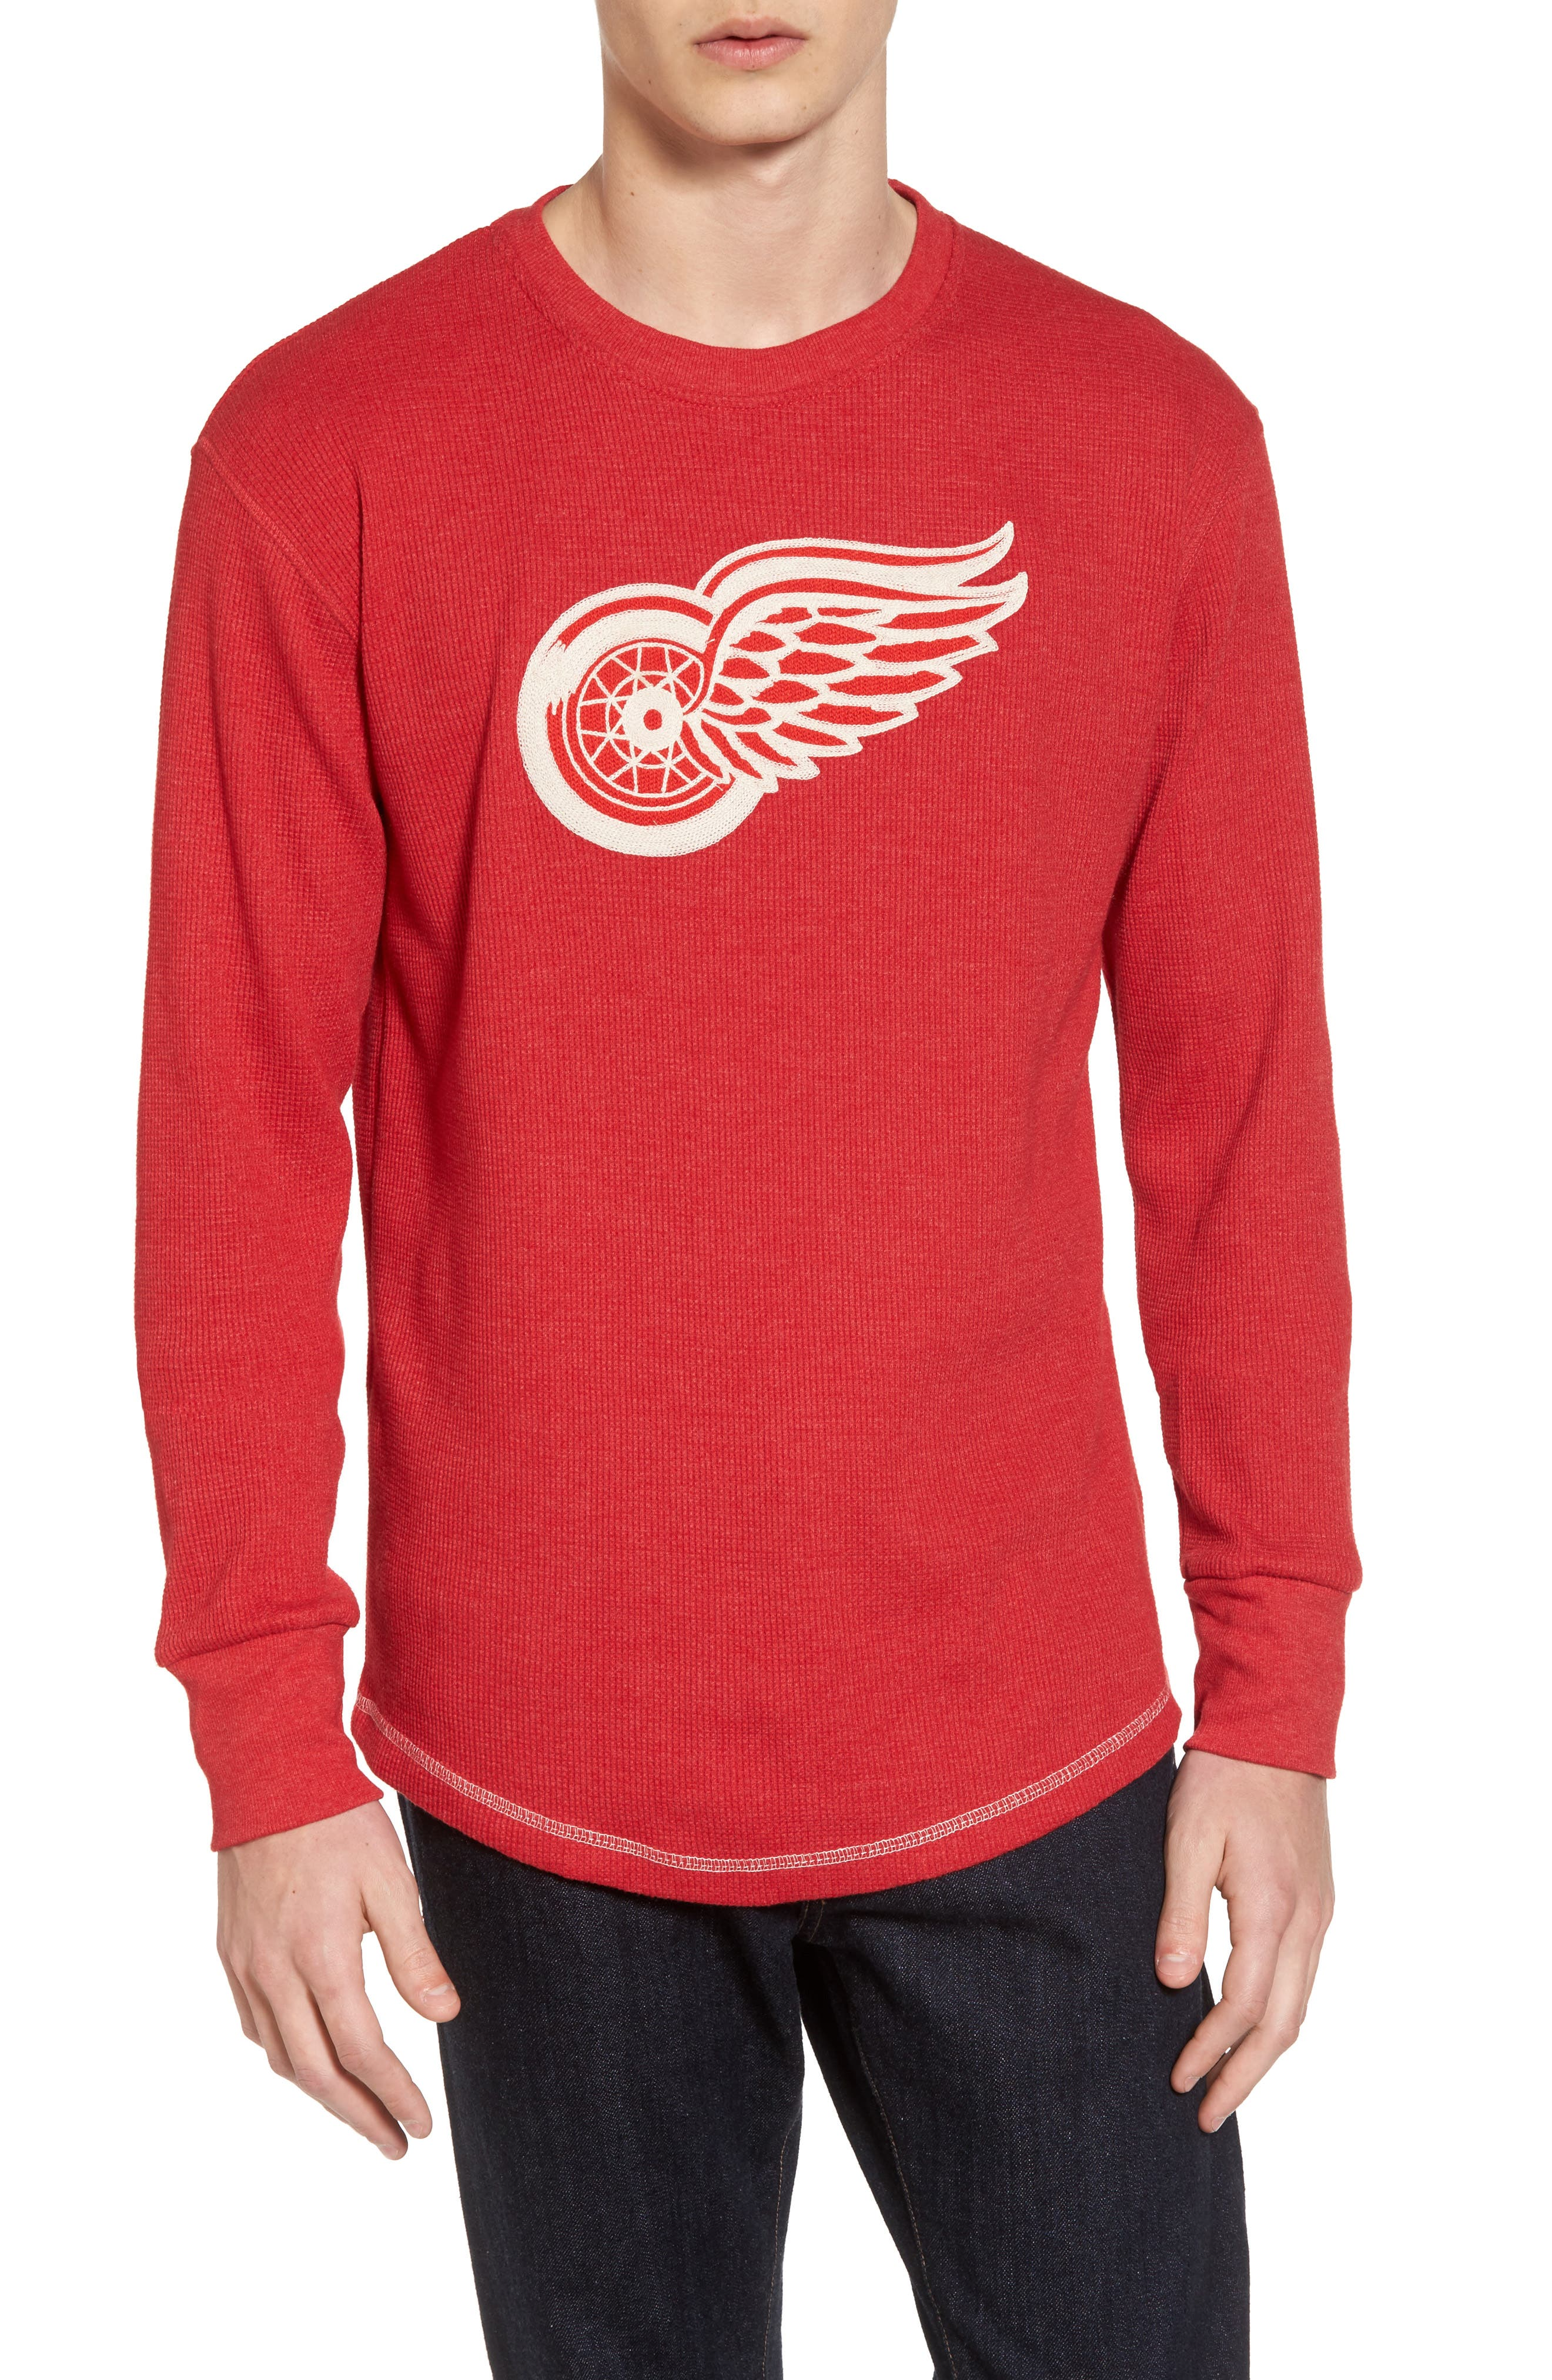 Detroit Red Wings Embroidered Long Sleeve Thermal Shirt,                             Main thumbnail 1, color,                             Red